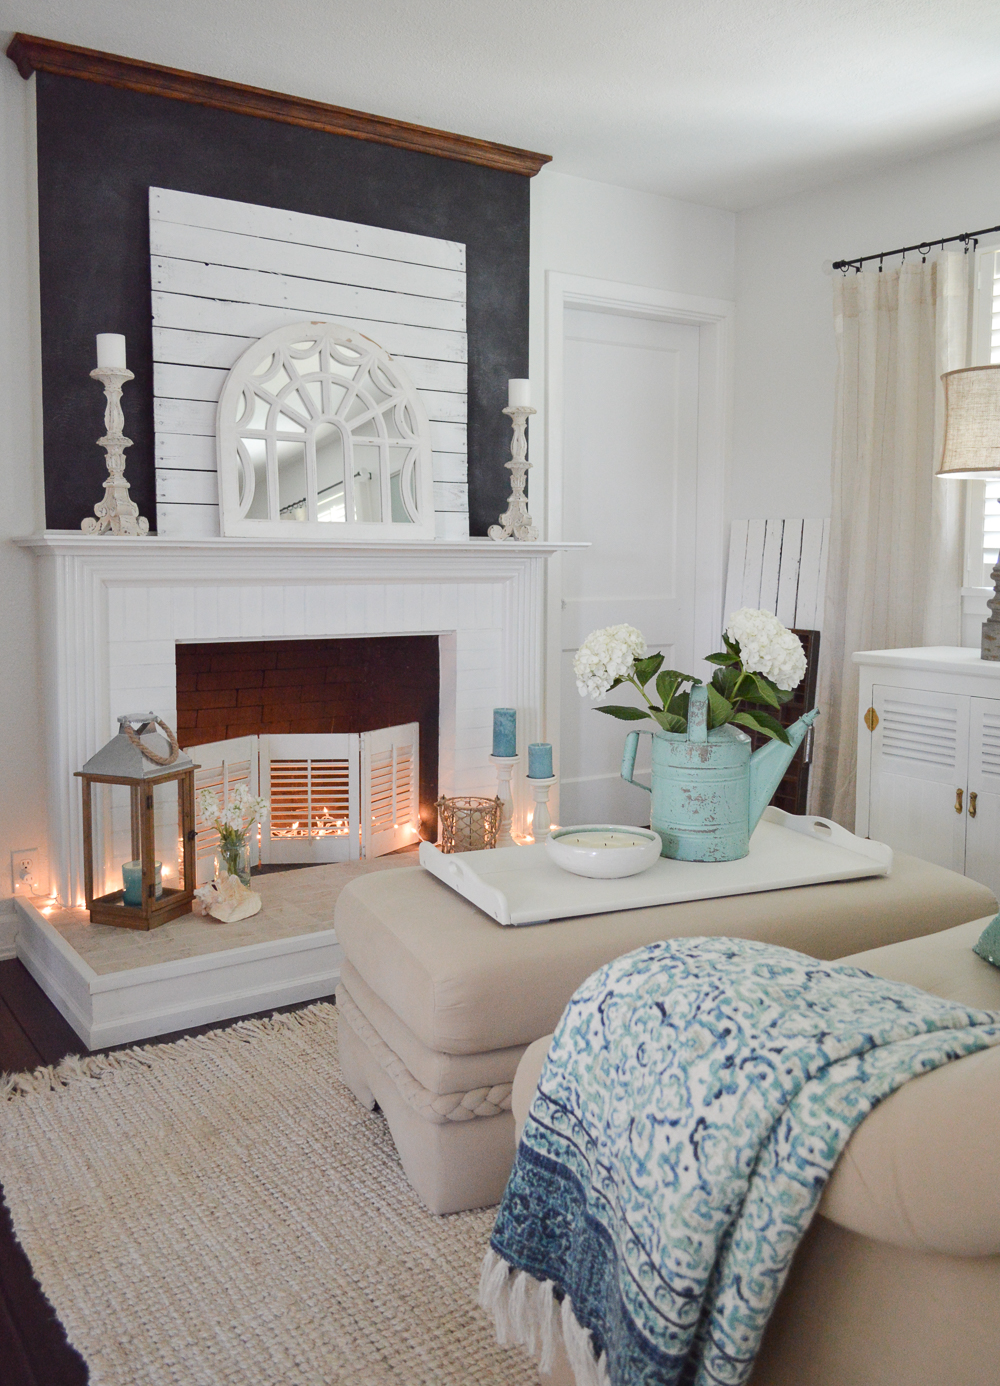 Casual Coastal Cottage Home - www.foxhollowcottage.com - Chalk painted fireplace, vintage watering can, twinkle lights